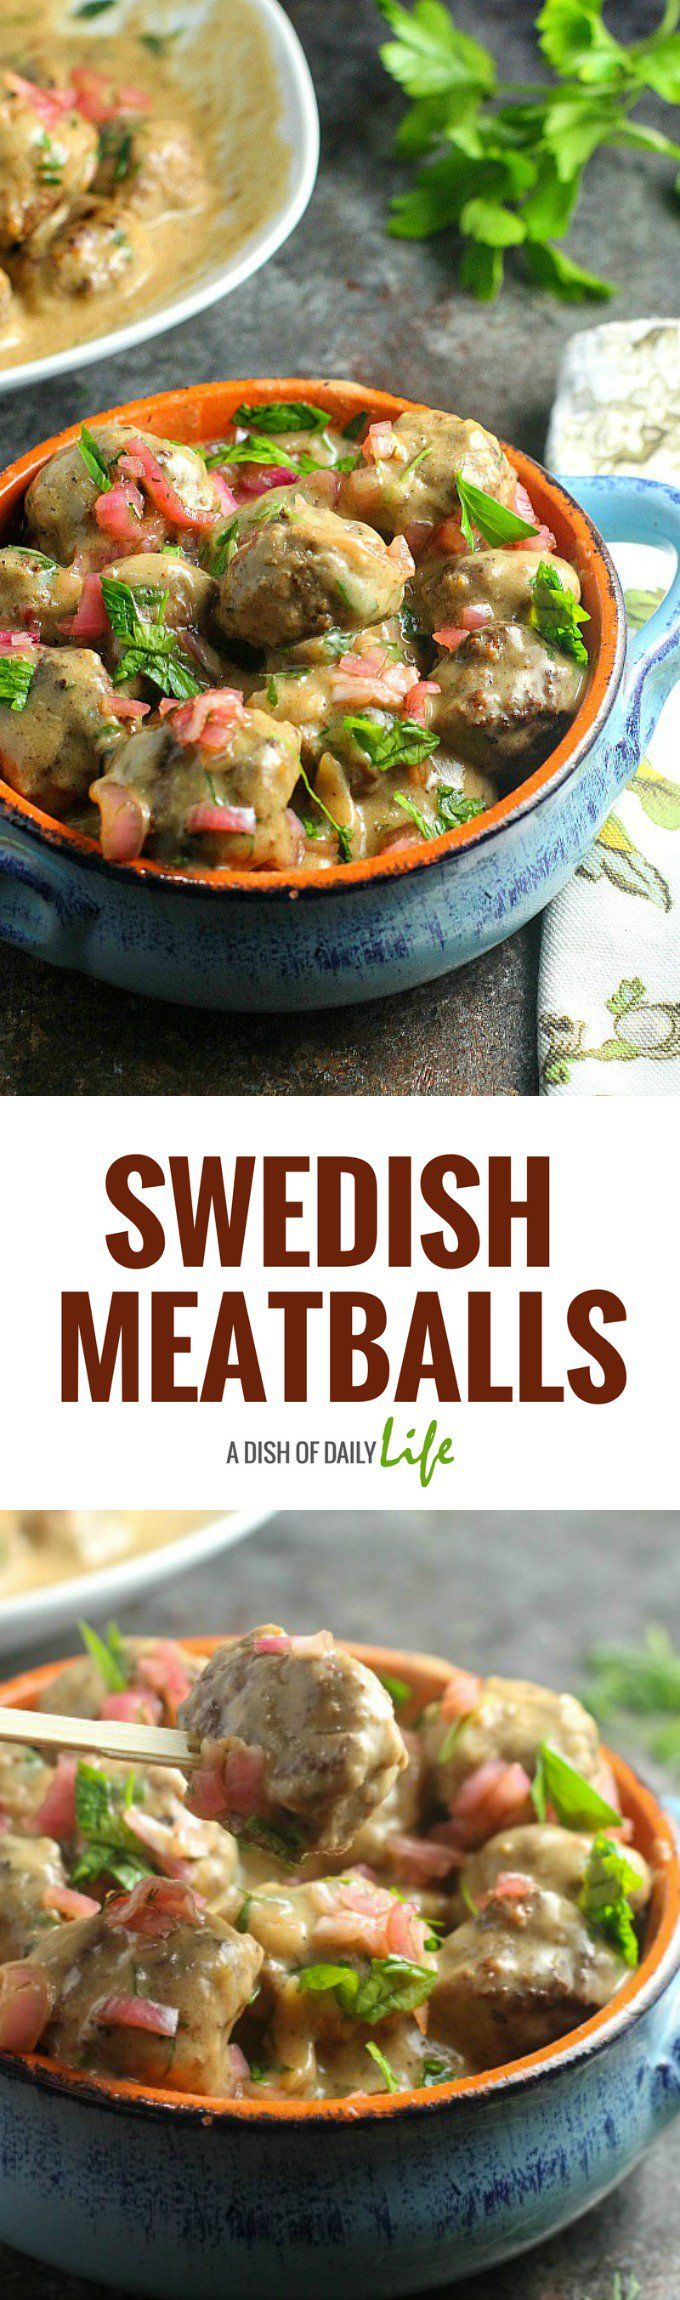 Swedish Meatballs, topped with pickled shallots, are the perfect starter to this elegant dinner party menu! #appetizer #meatballs #SwedishMeatballs